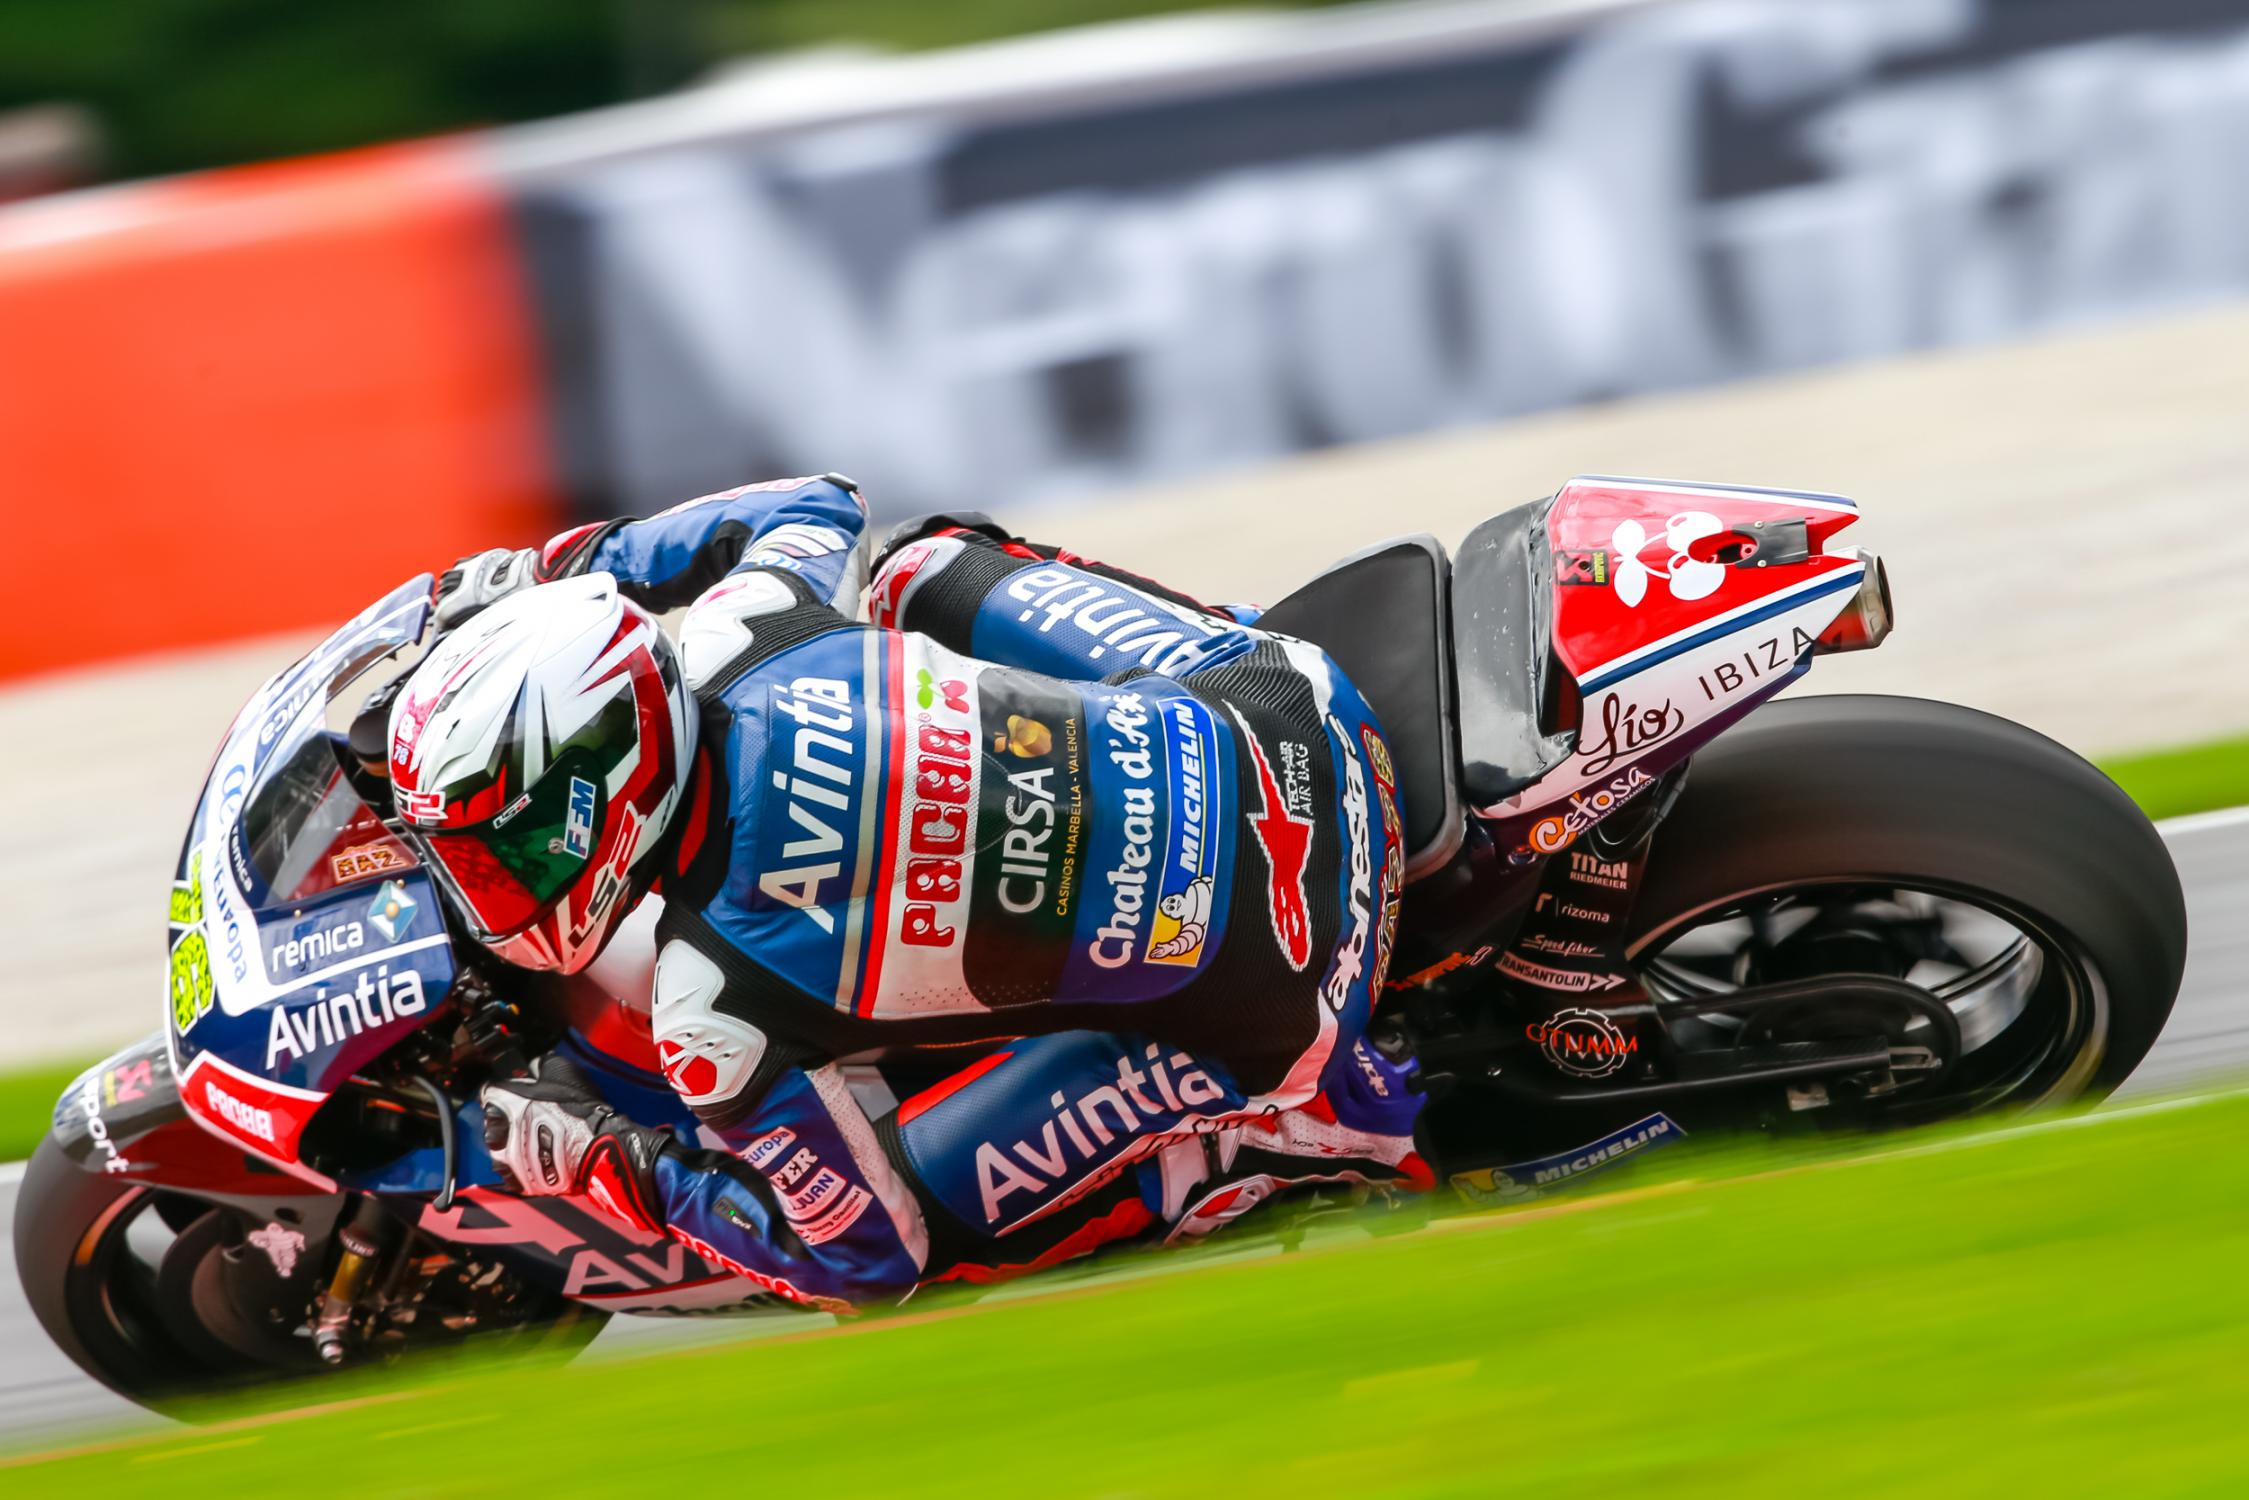 LORIS BAZ RECONDUIT EN 2017